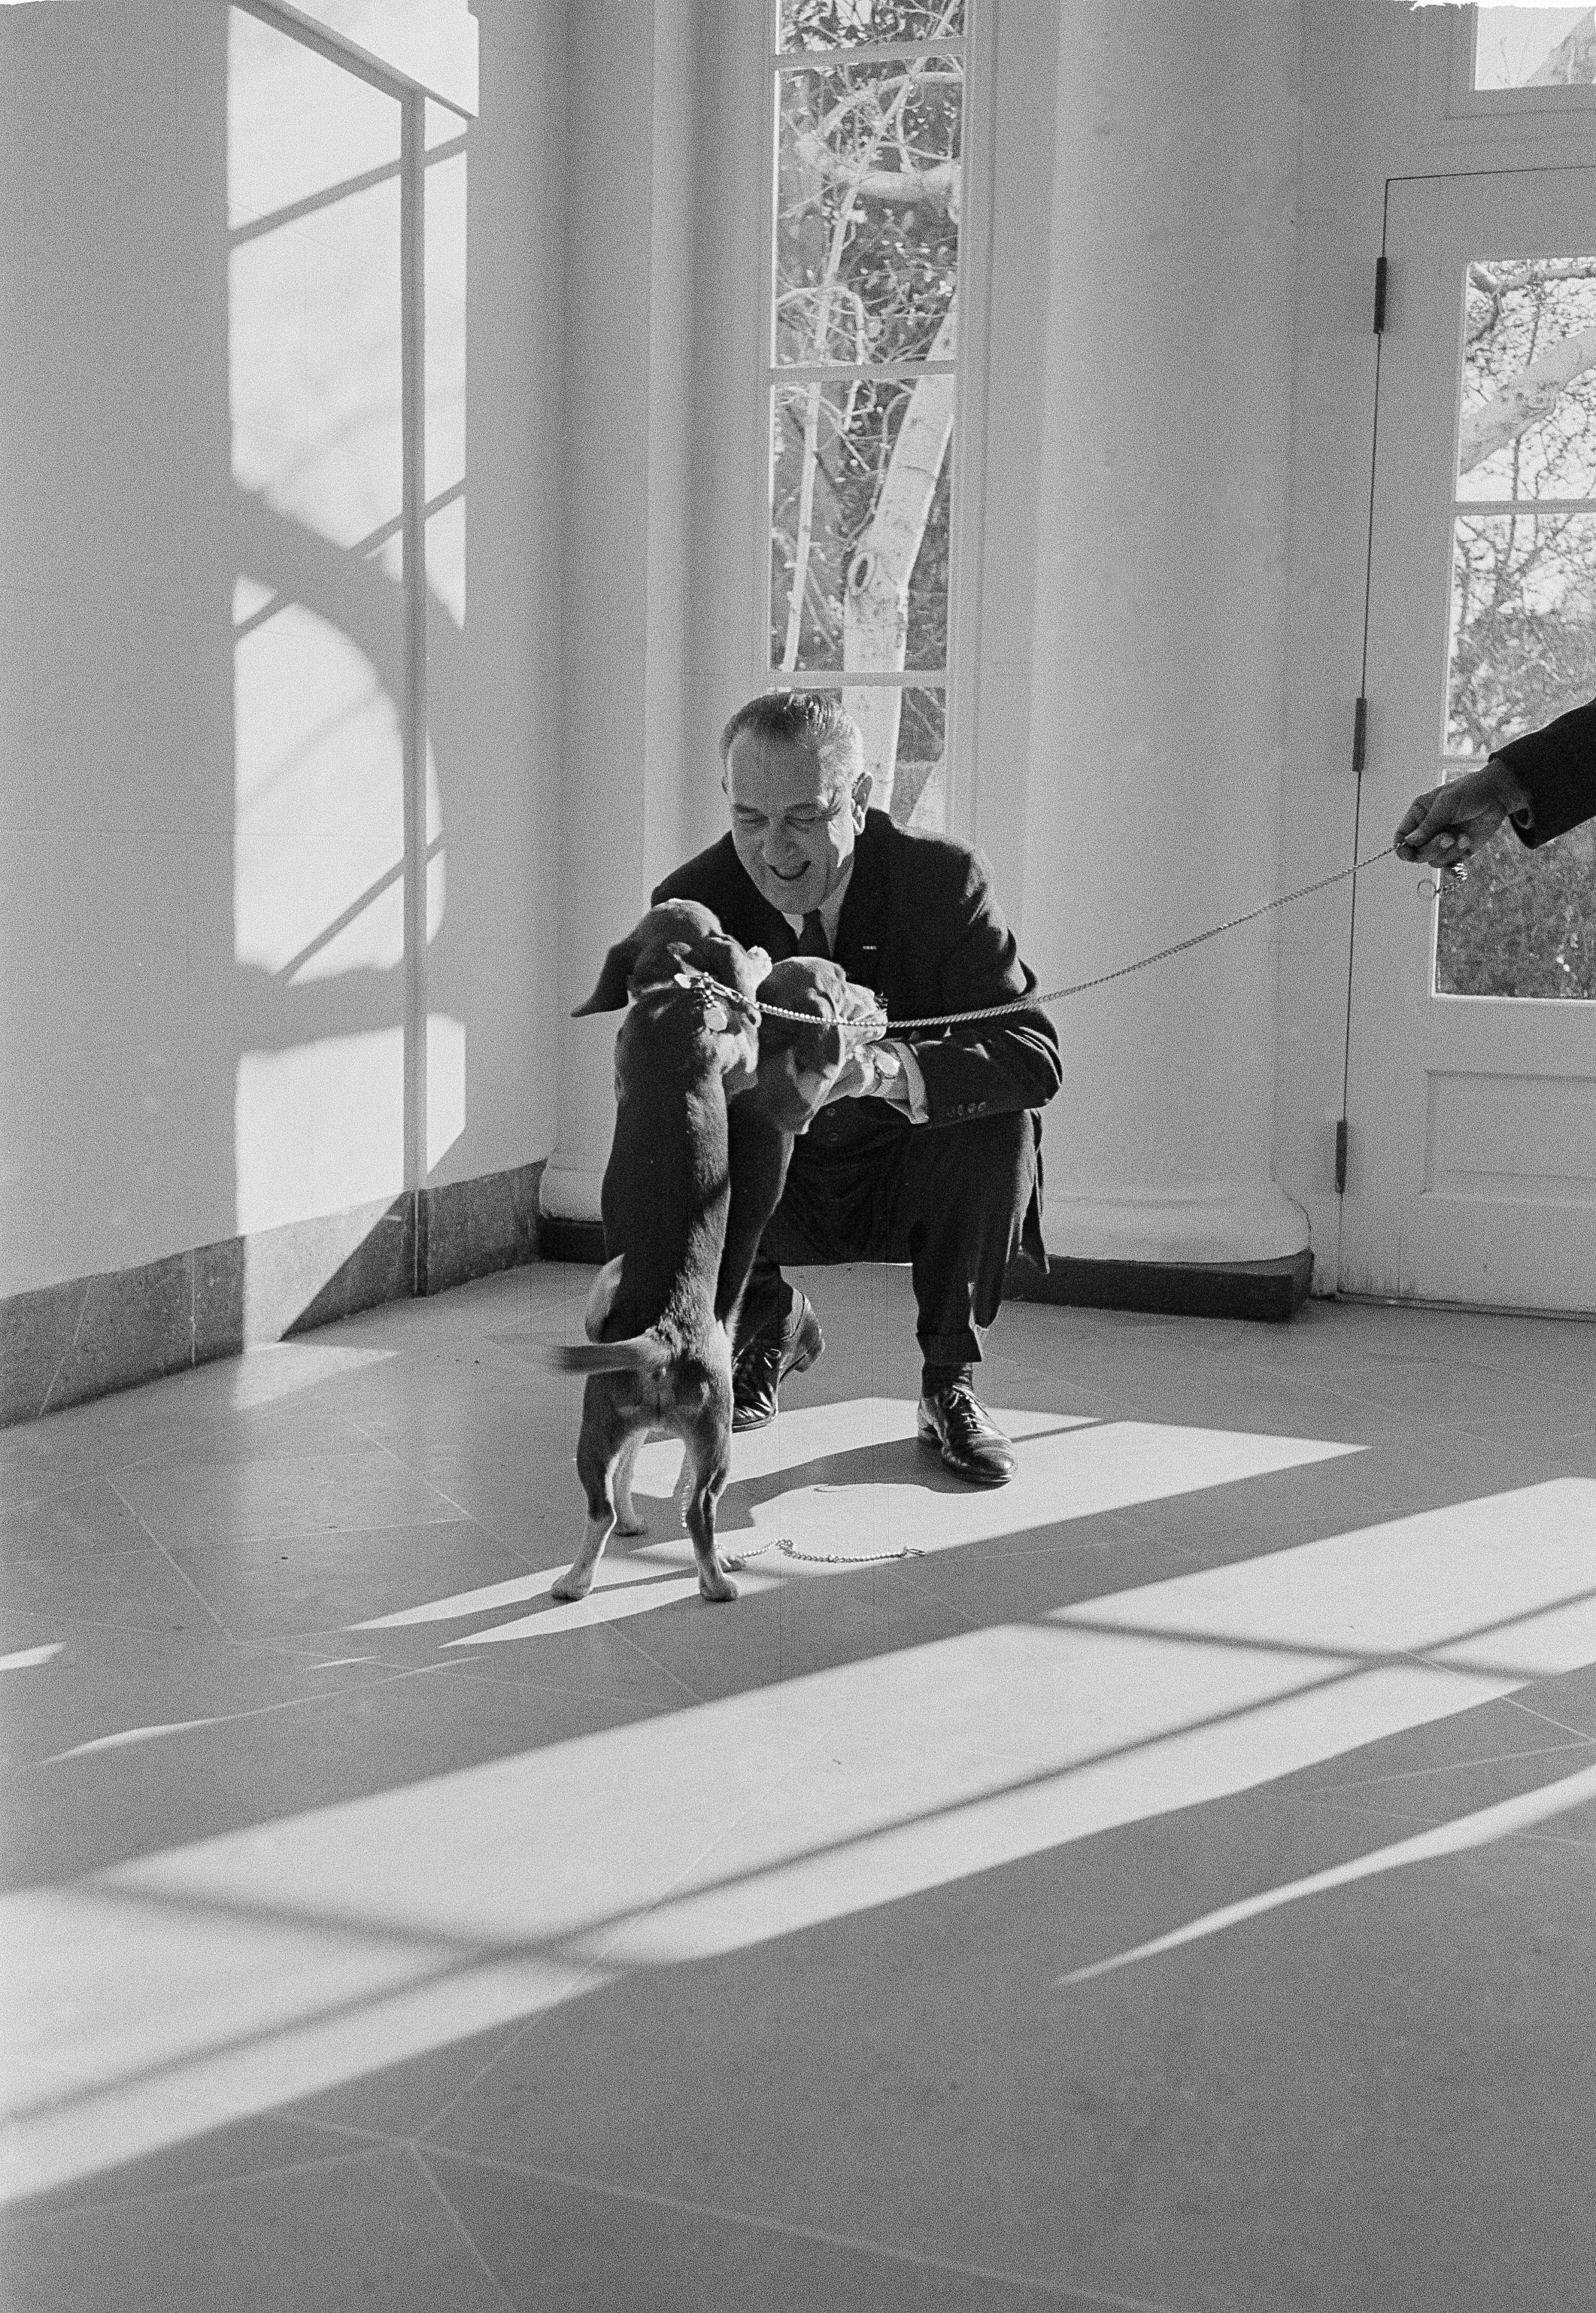 Lyndon B. Johnson gets a lively greeting from his daughter Lucy's beagles, Him and Her, in a White House corridor, Dec. 21, 1963.